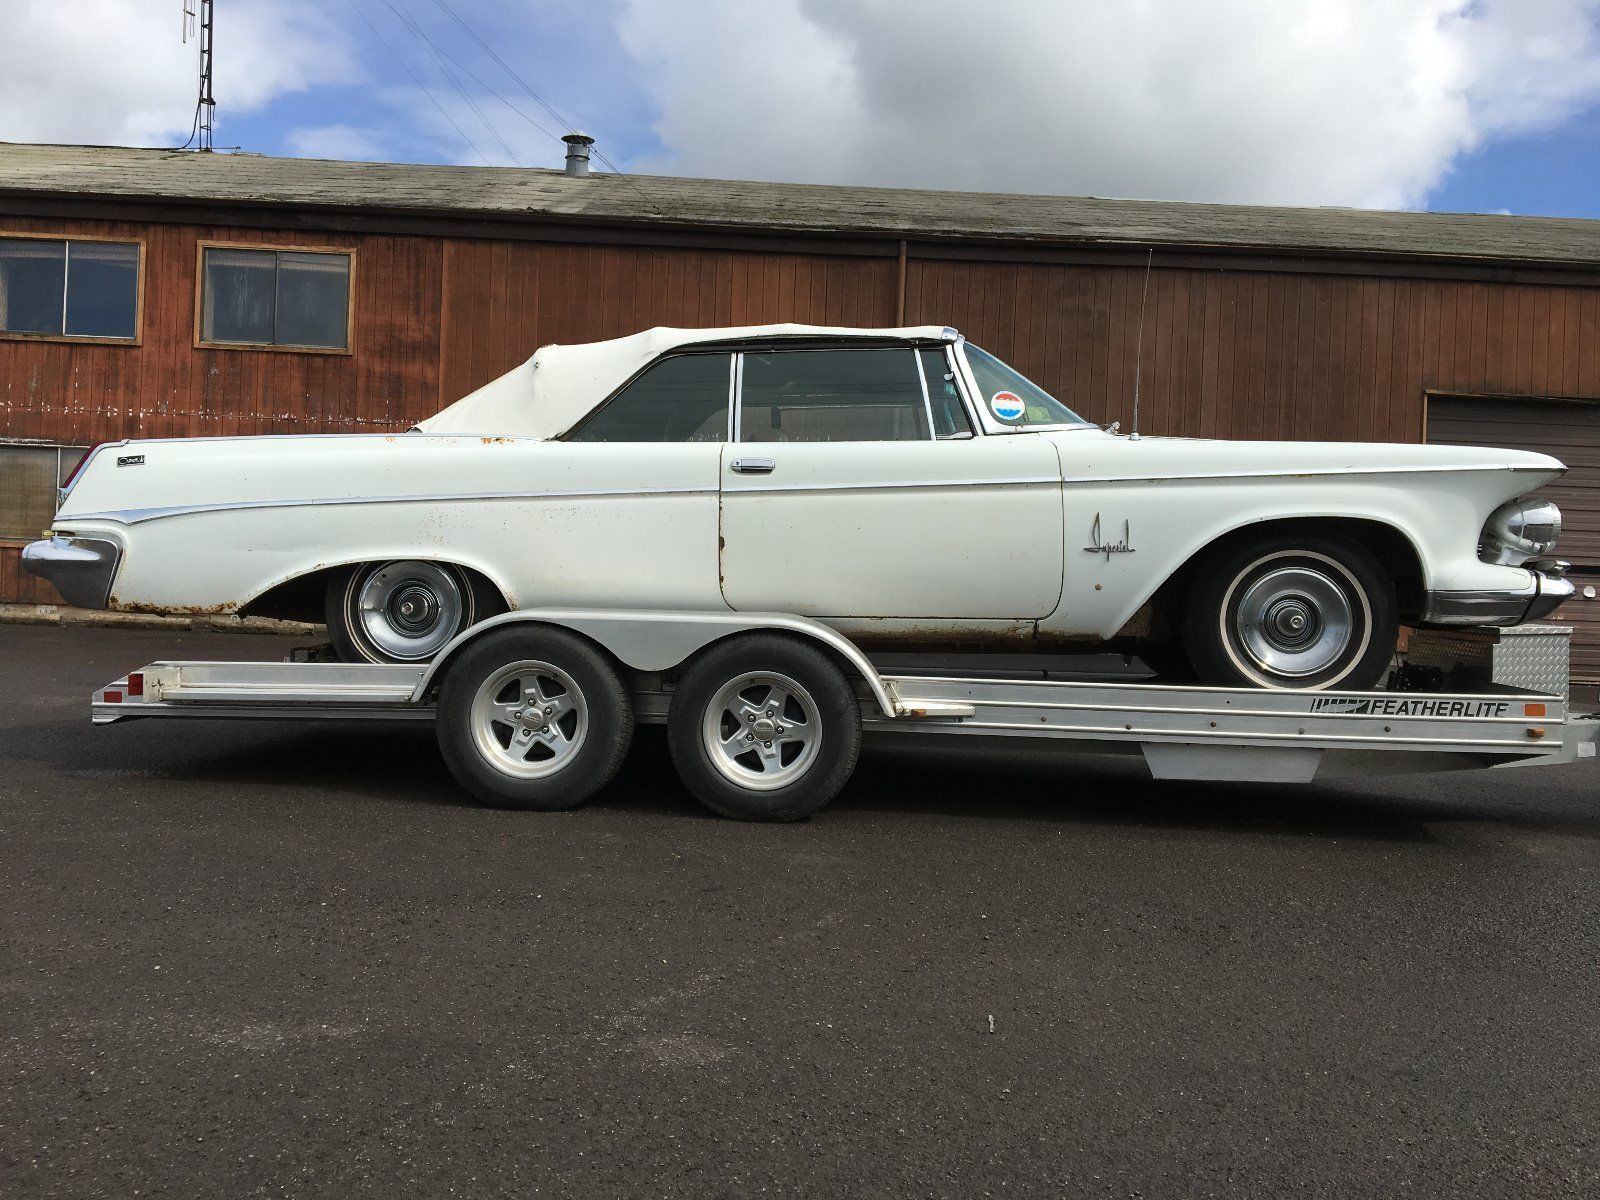 1963 Chrysler Imperial Crown Convertible Barn Find for sale